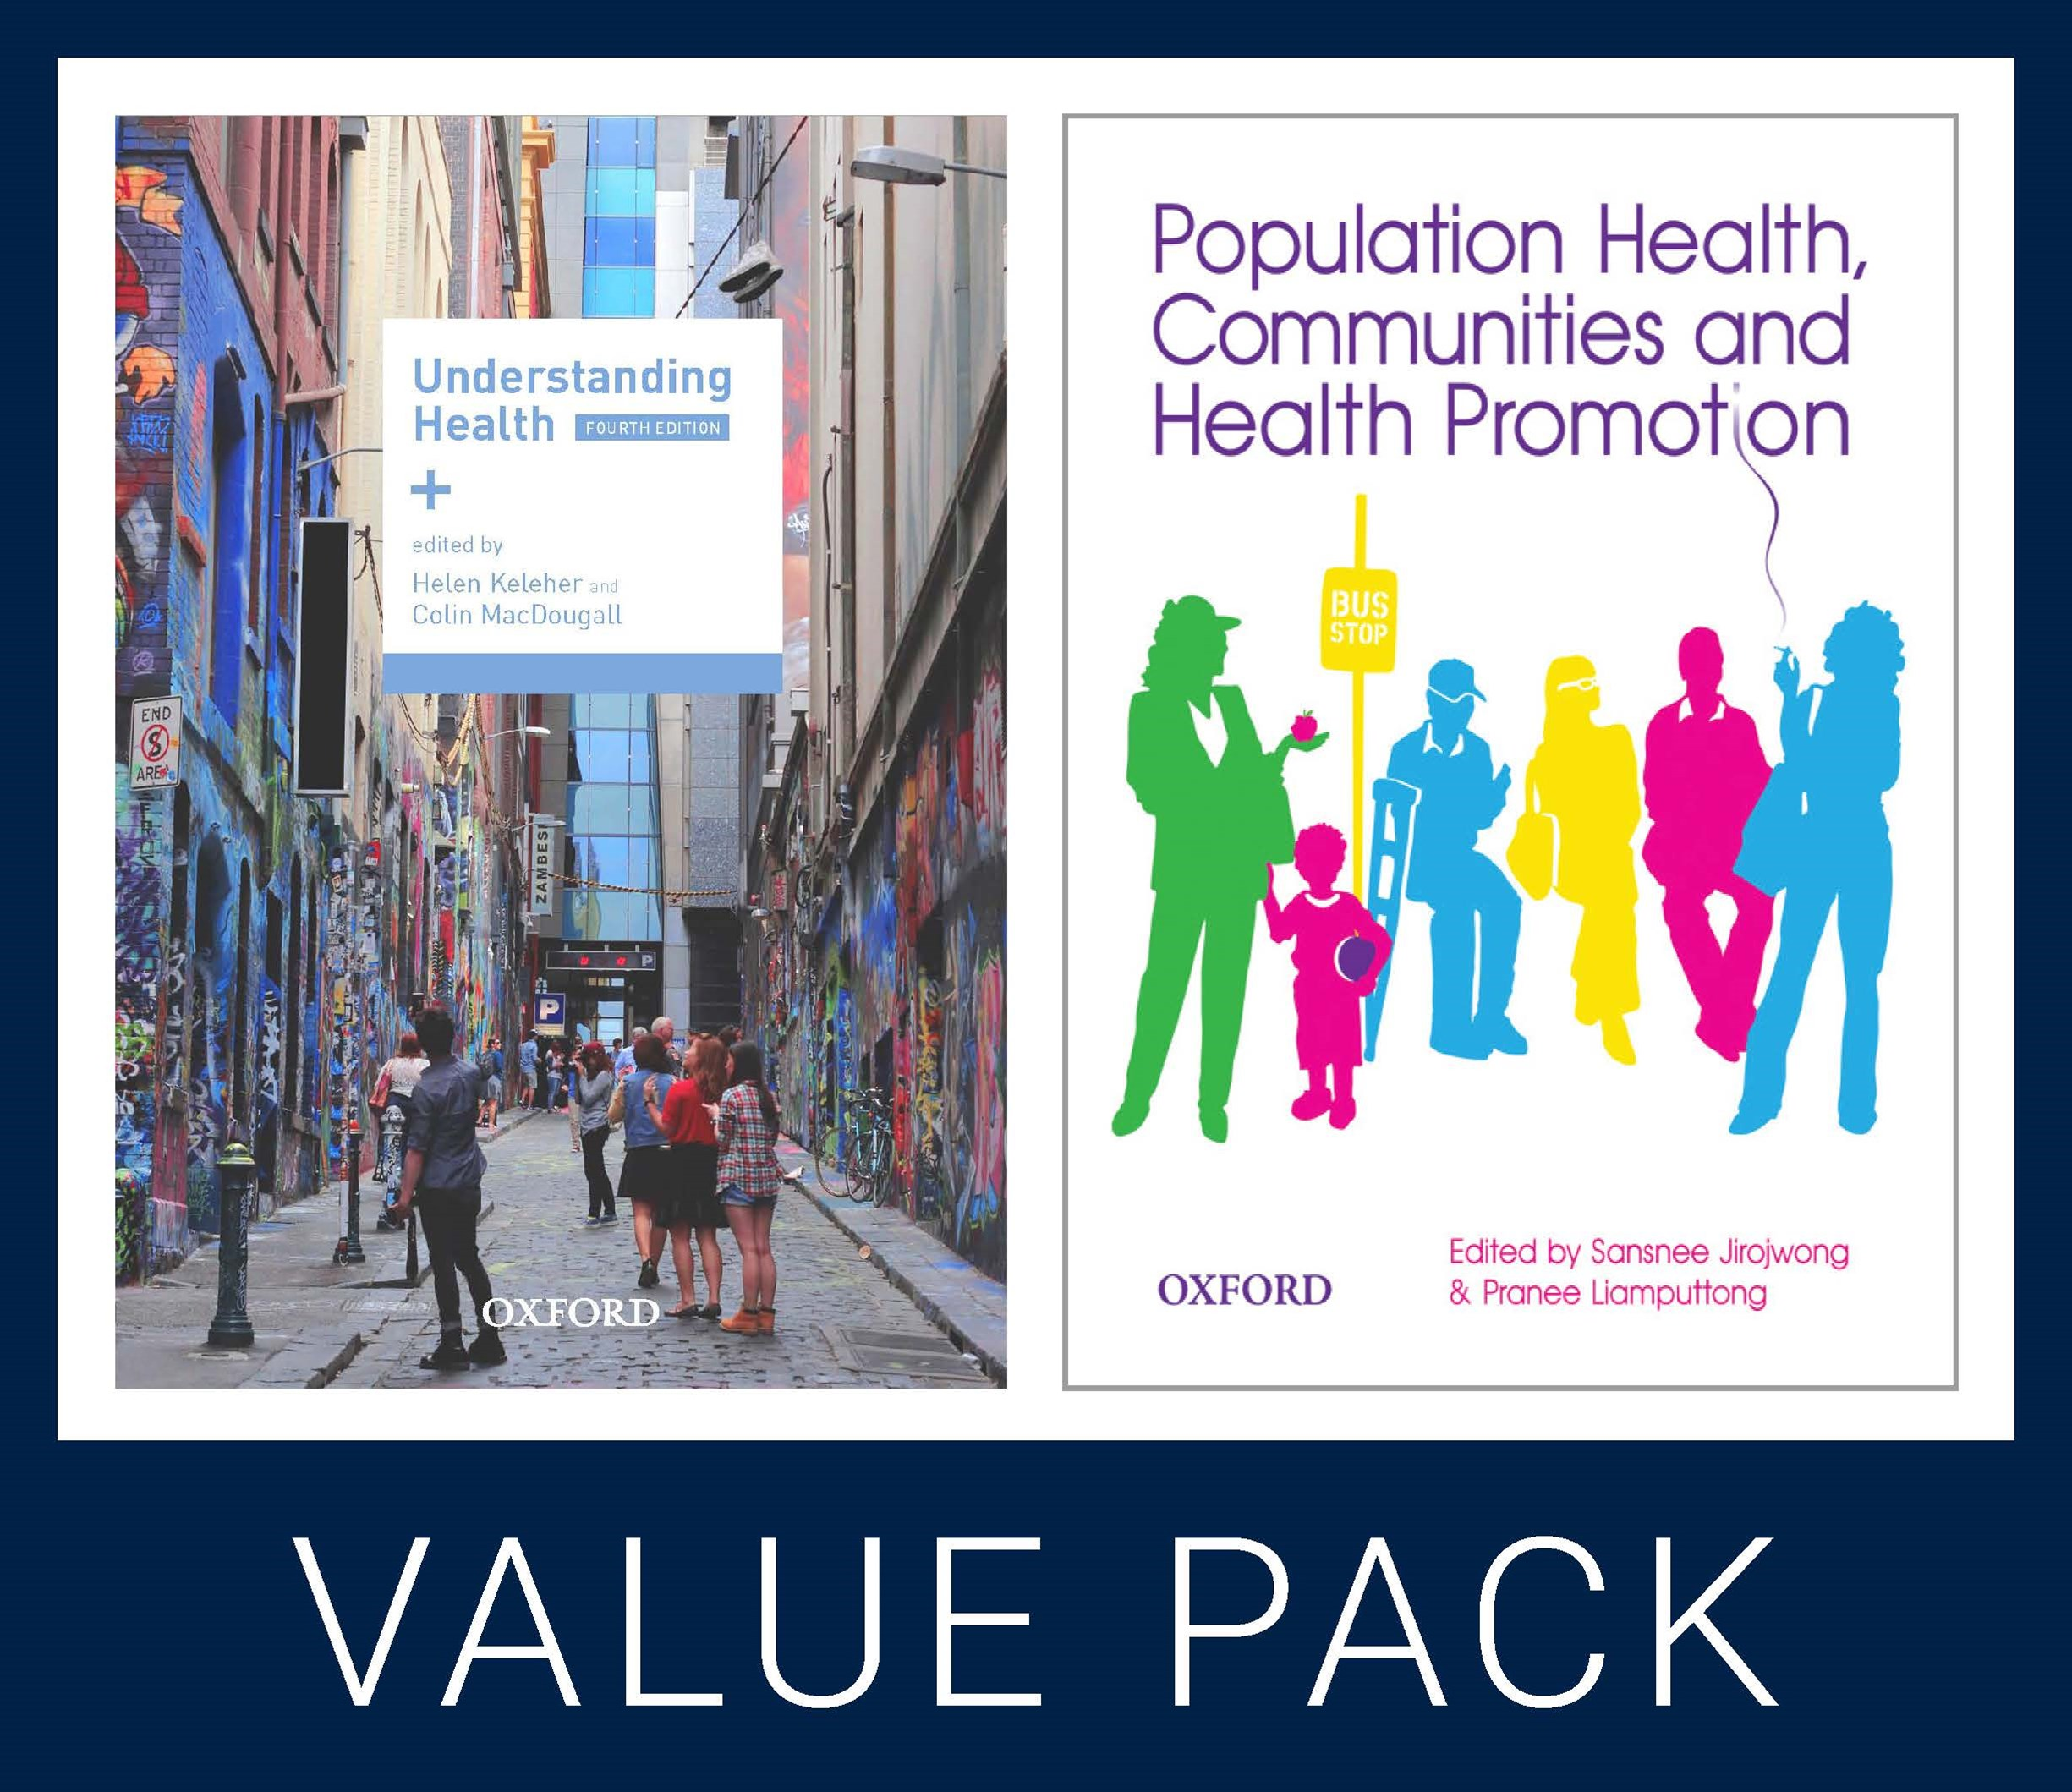 Understanding Health 4e and Population Health, Communities and Health Promotion